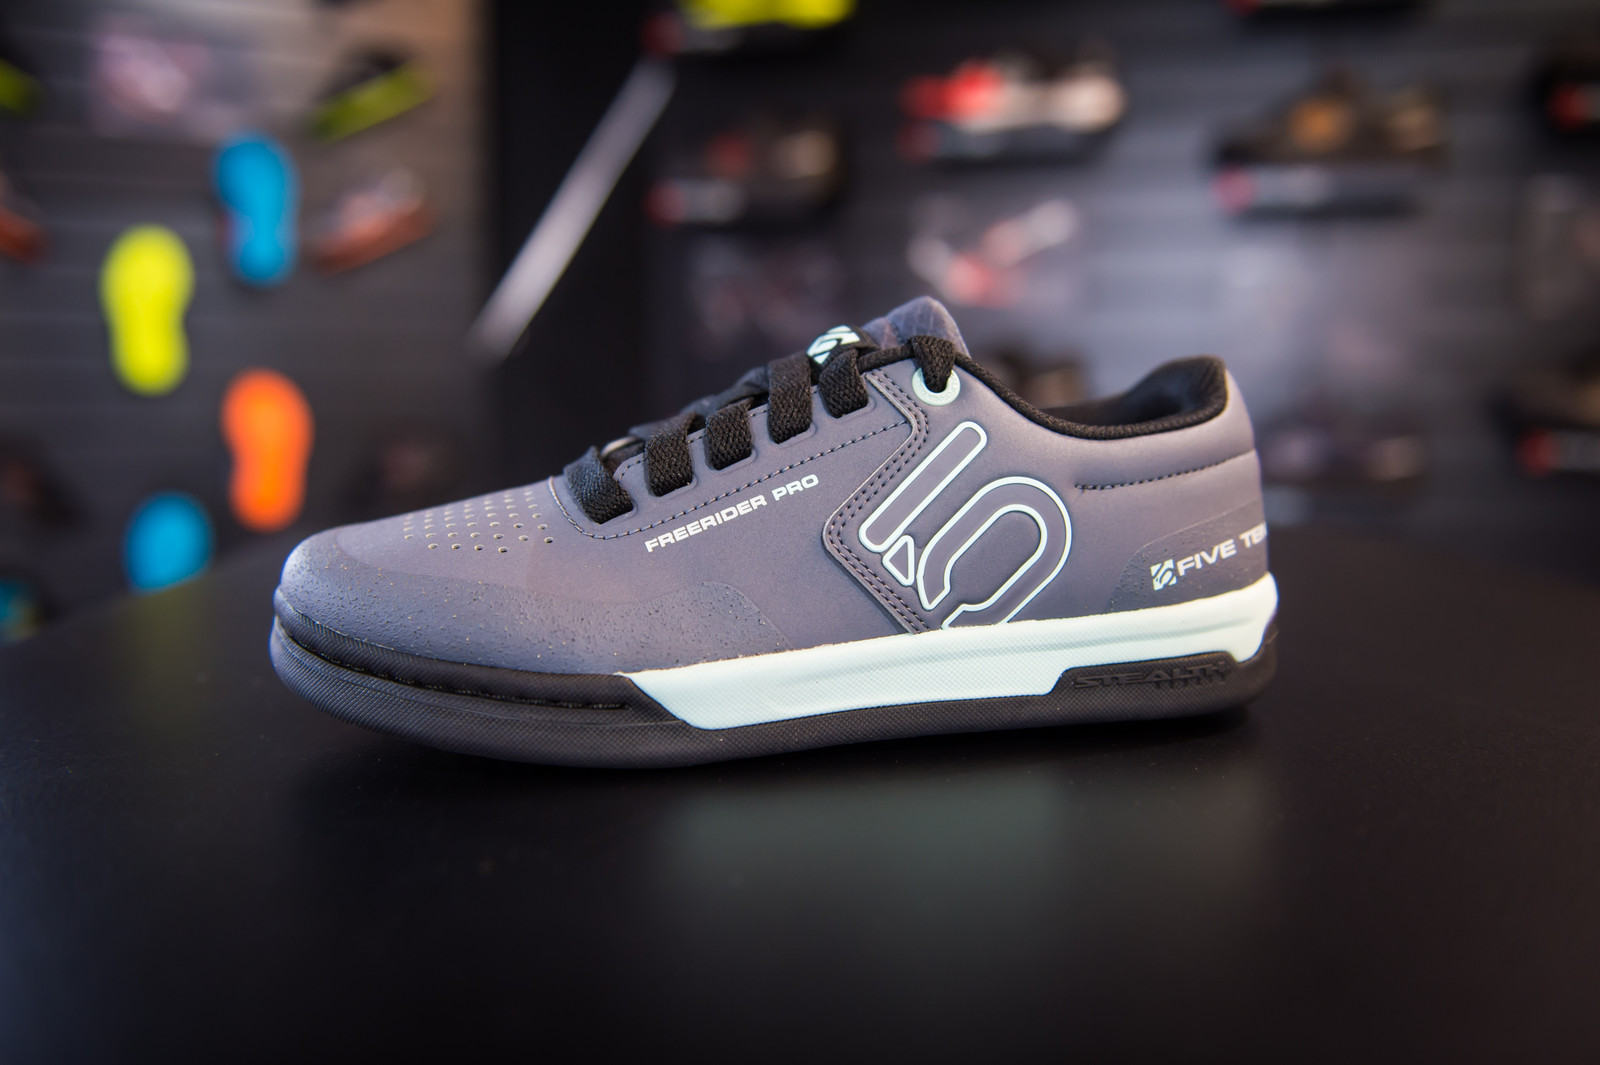 25252a78c5be12 New Five Ten MTB Shoes at Eurobike - Mountain Bikes Feature Stories ...